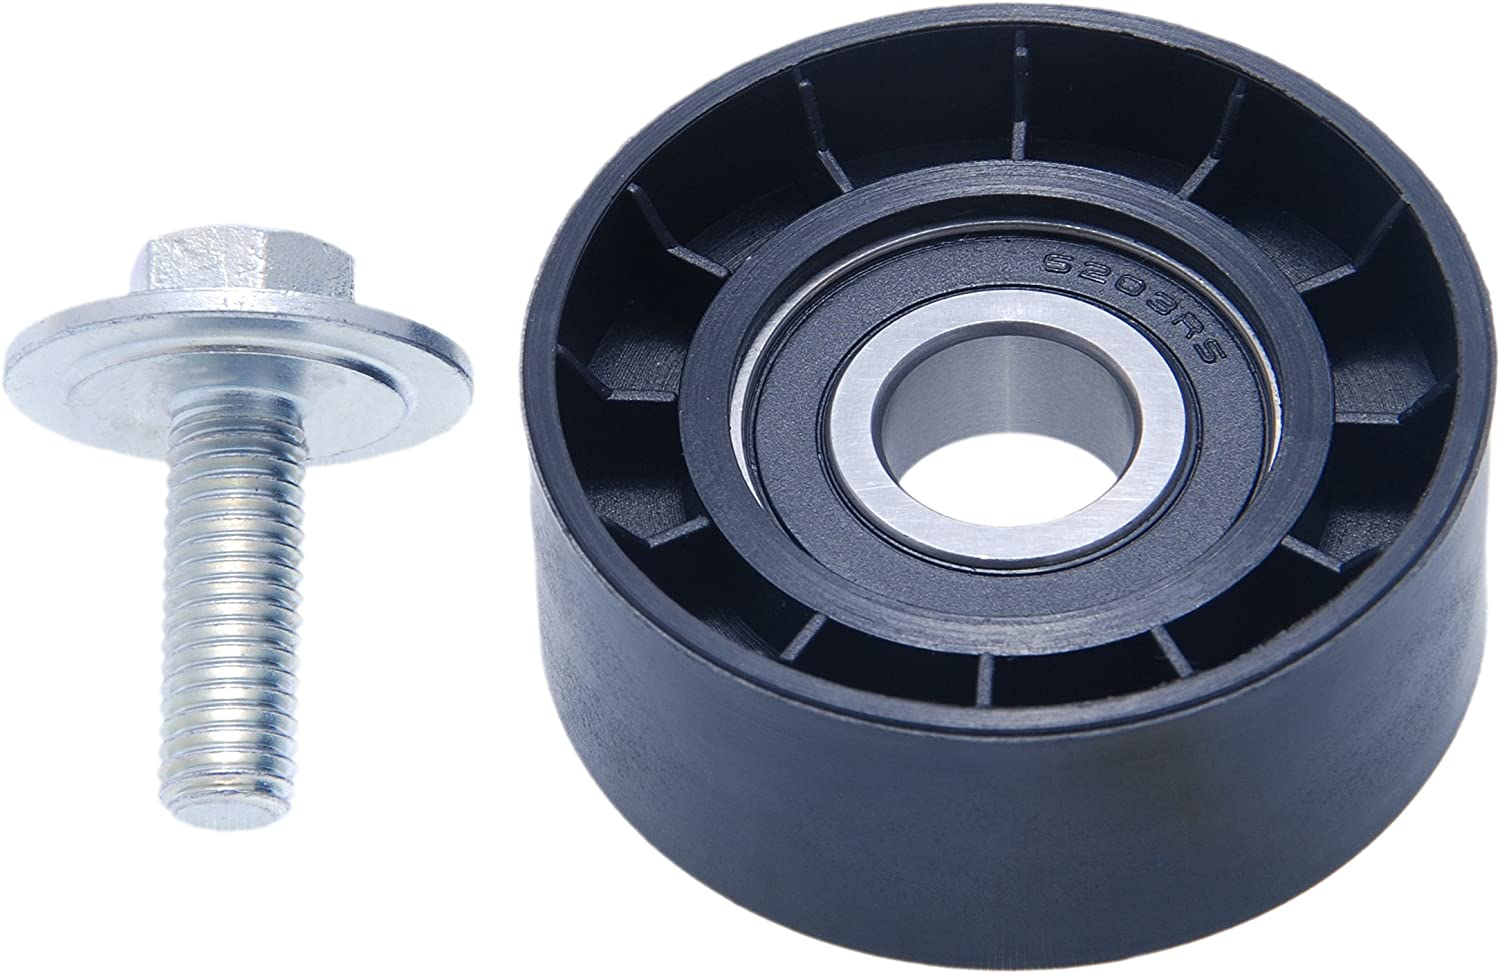 1355389 - Max 58% OFF Pulley Today's only Ford Idler For